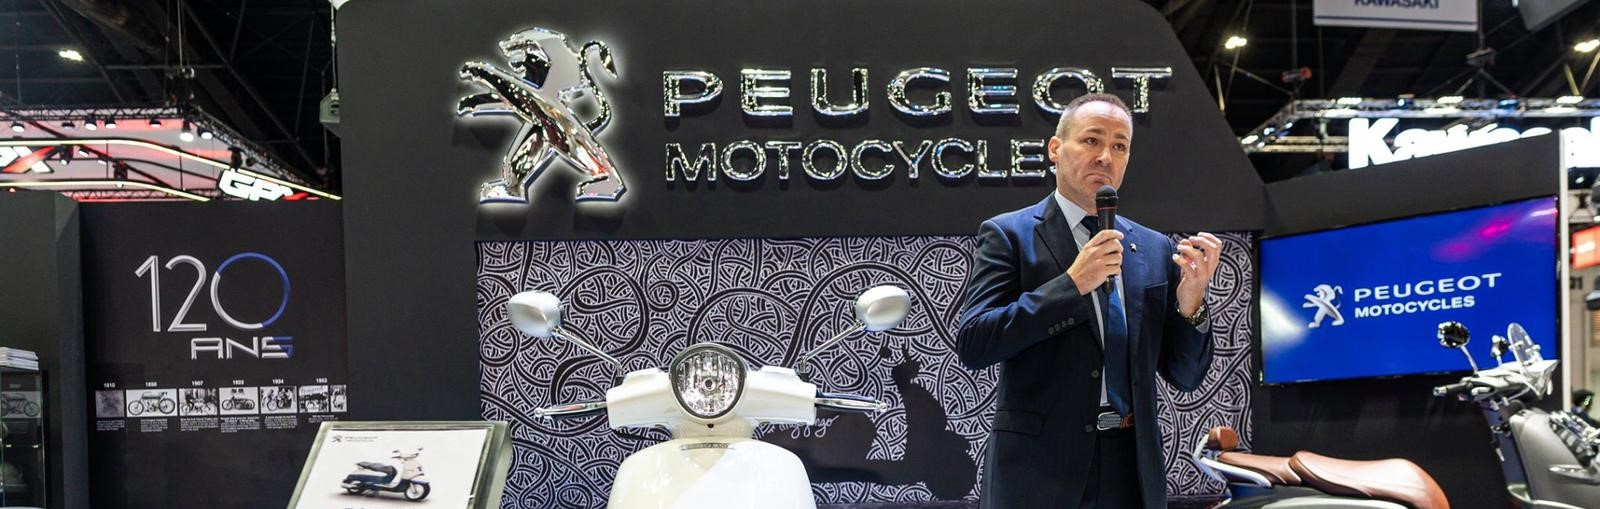 Thailand market entry for Peugeot Motocycles